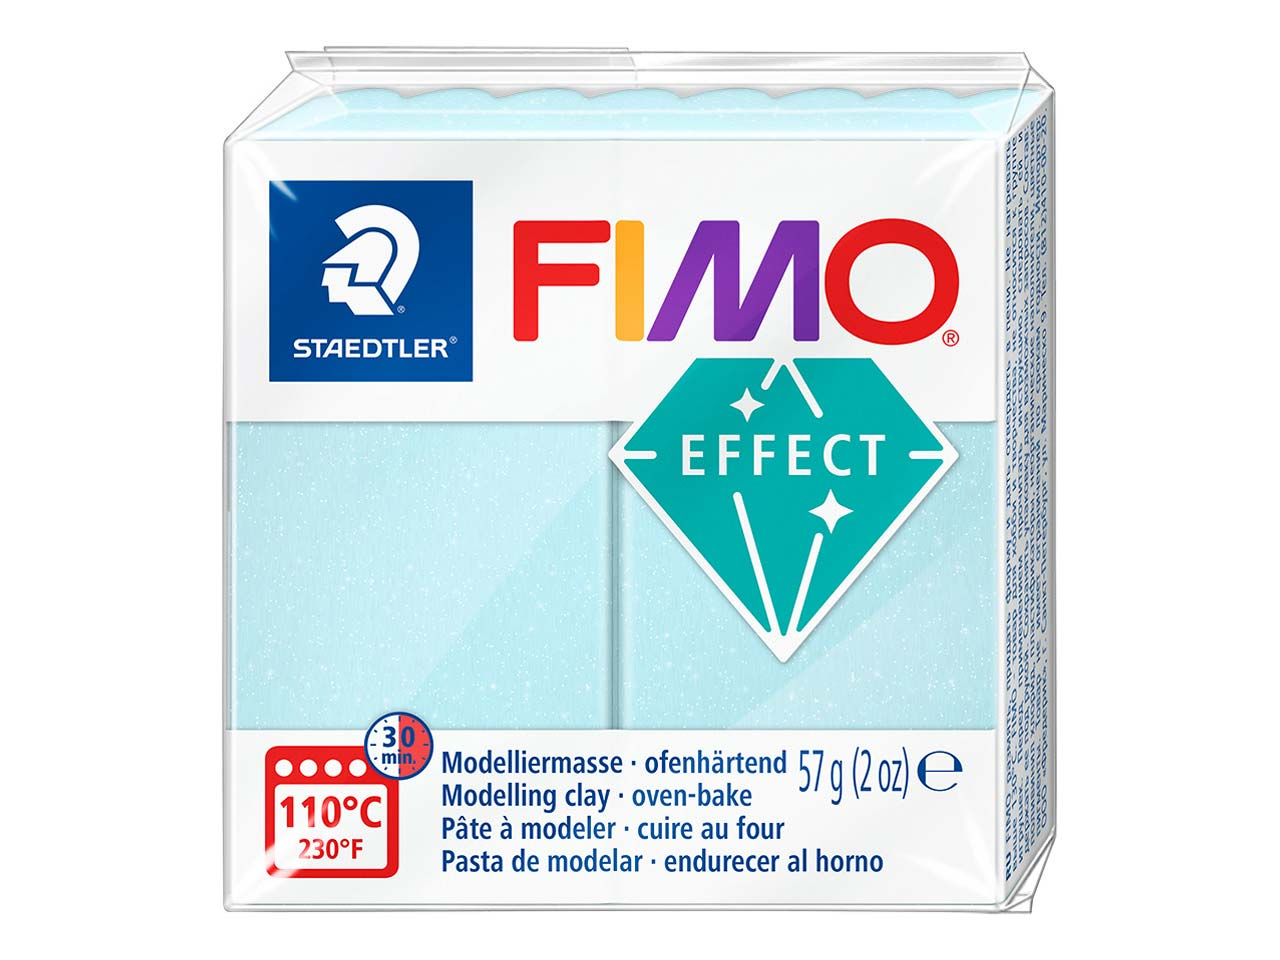 Fimo Effect Gemstone Blue Ice       Quartz 56g Polymer Clay Block, Fimo Colour Ref 306